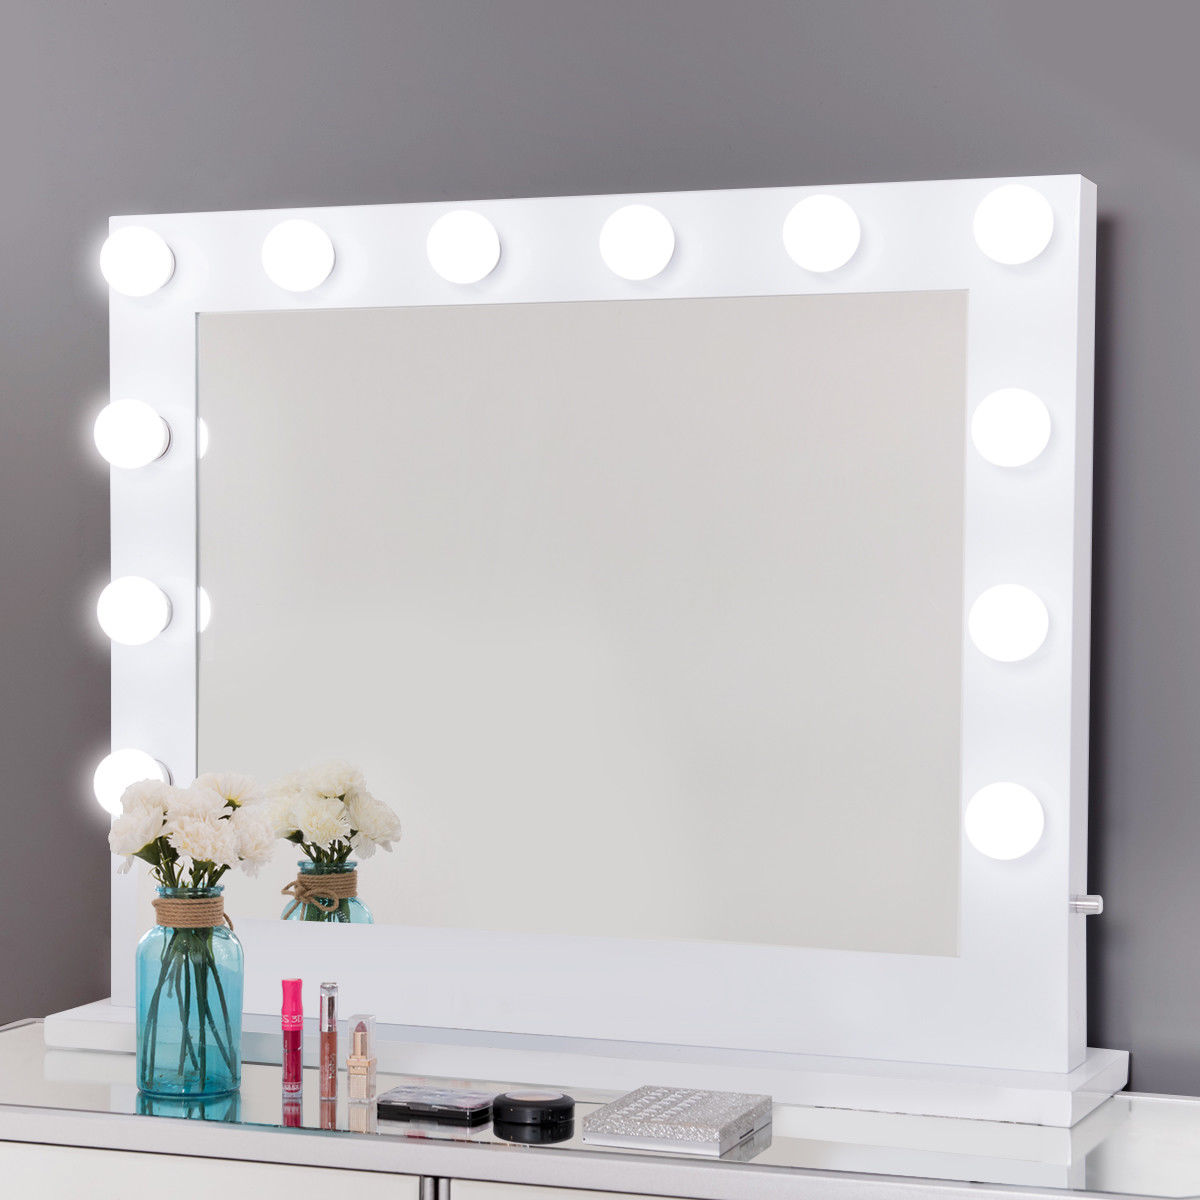 Gymax Hollywood Lighted Makeup Vanity Dressing Mirror Tabletop Mirror  Dimmer LED White   Walmart.com